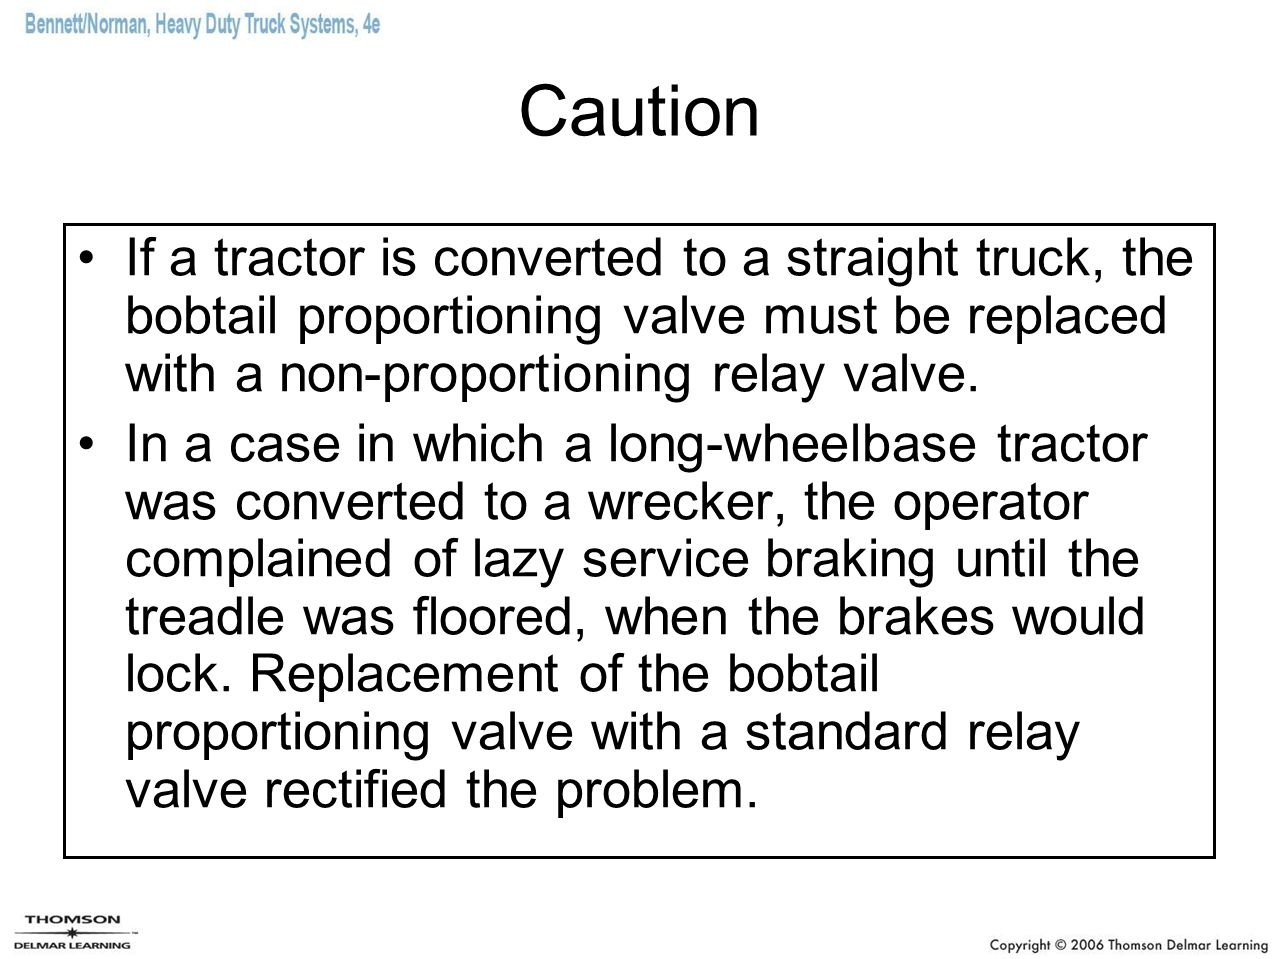 Caution If a tractor is converted to a straight truck, the bobtail proportioning valve must be replaced with a non-proportioning relay valve.